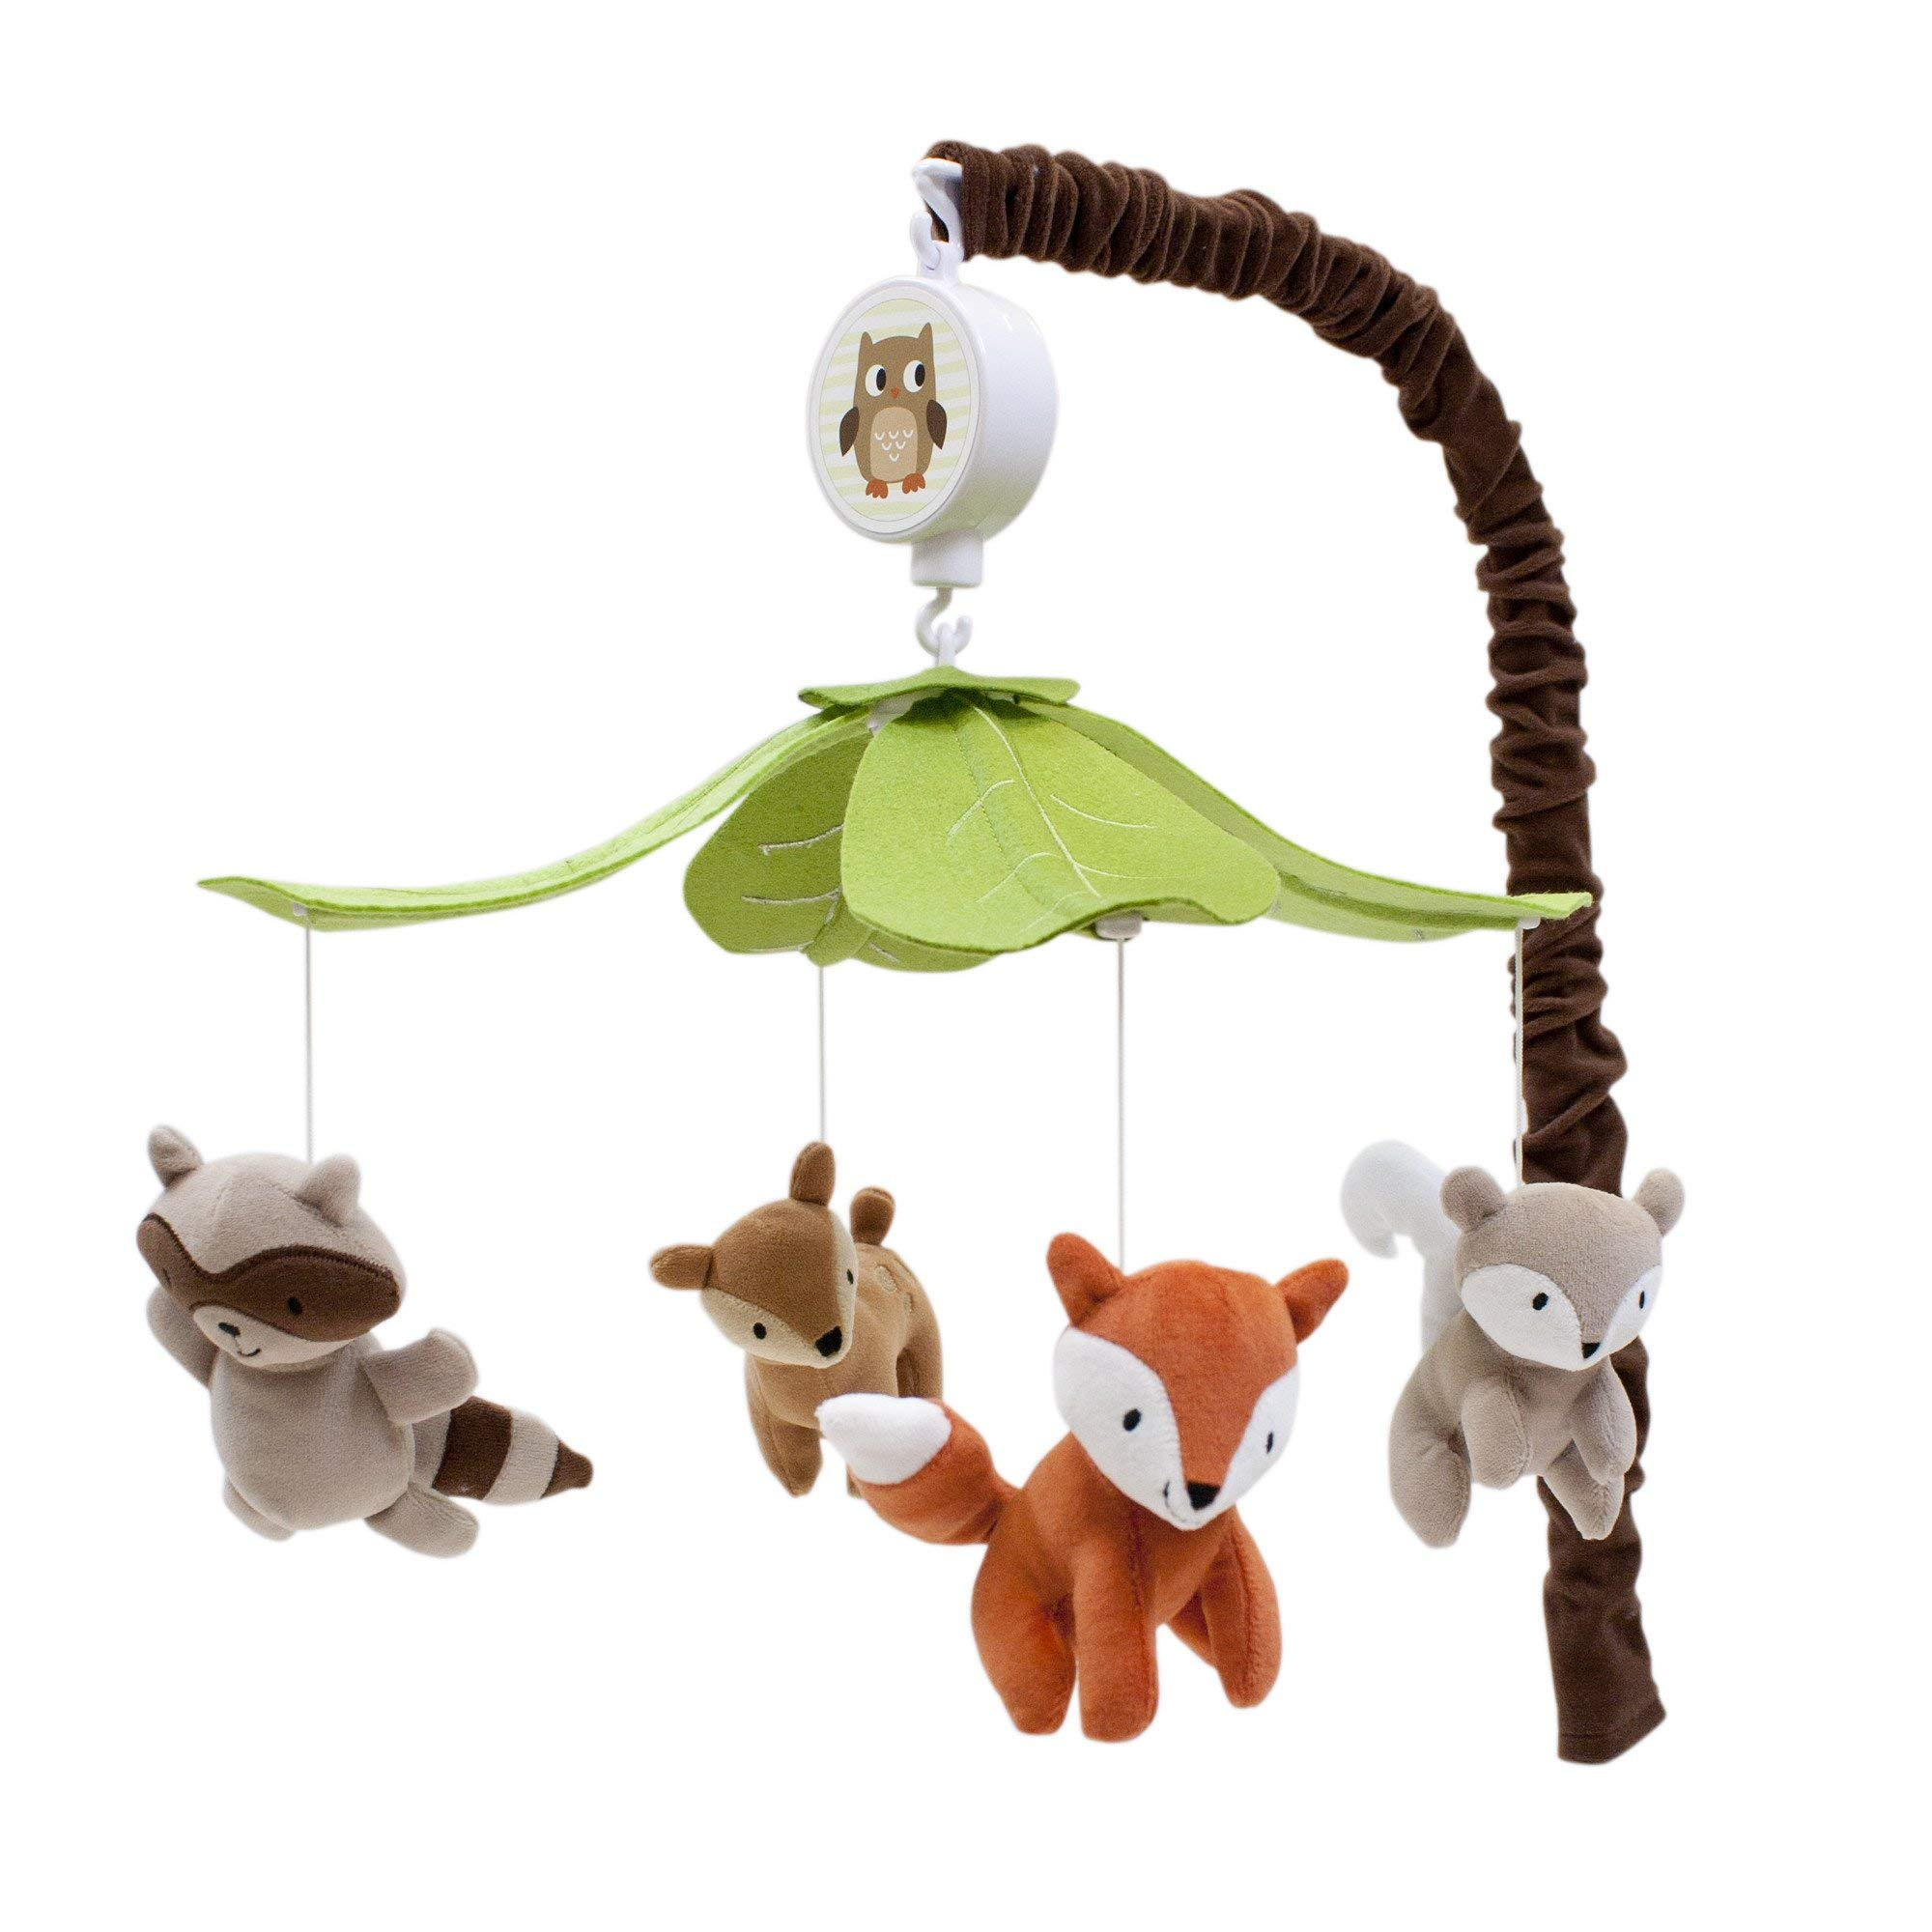 Lambs & Ivy Woodland Tales Musical Mobile - Gray, Brown, Green, Woodland, Owl, Raccoon, Fox, Deer